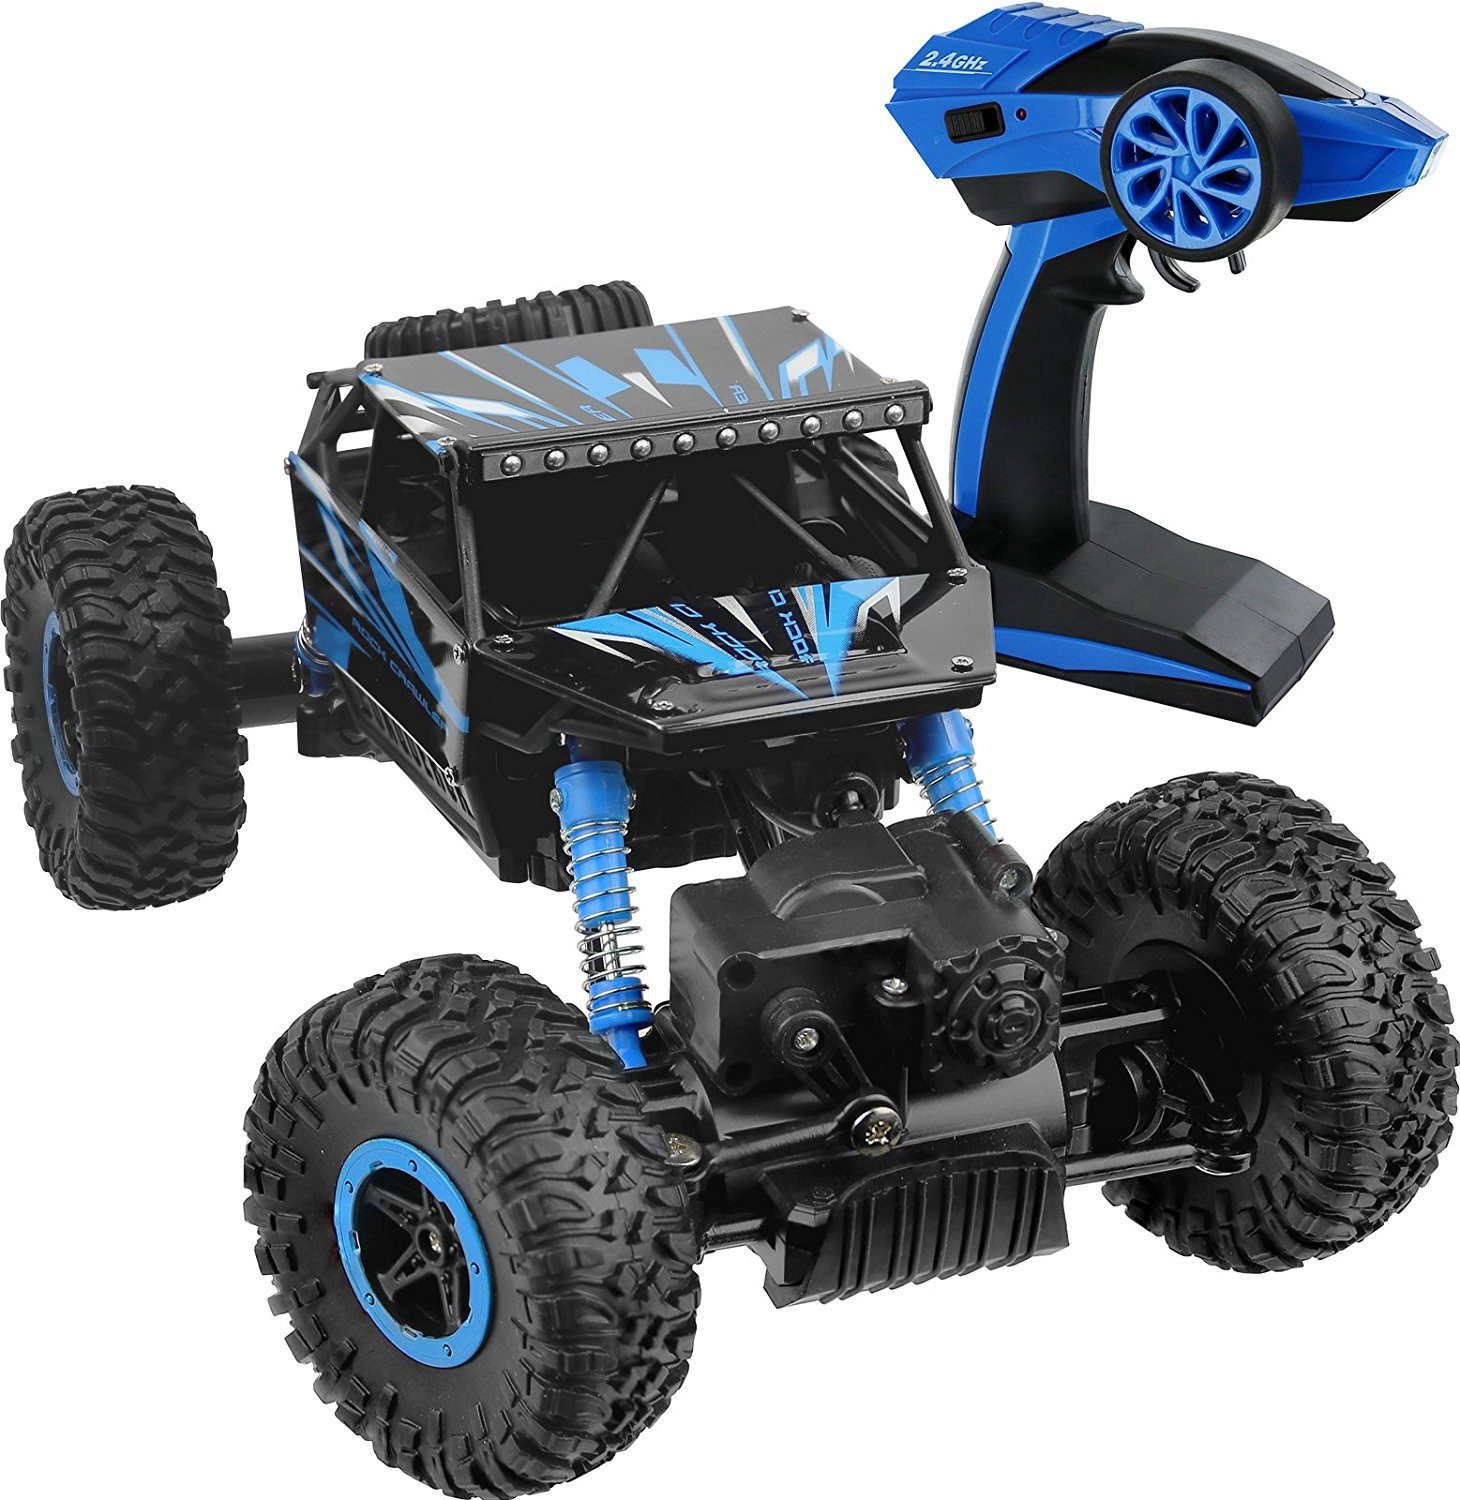 Raspberry Pi Rc Car Controlled By Text Chat Twitch Very Simple Radio Control R C